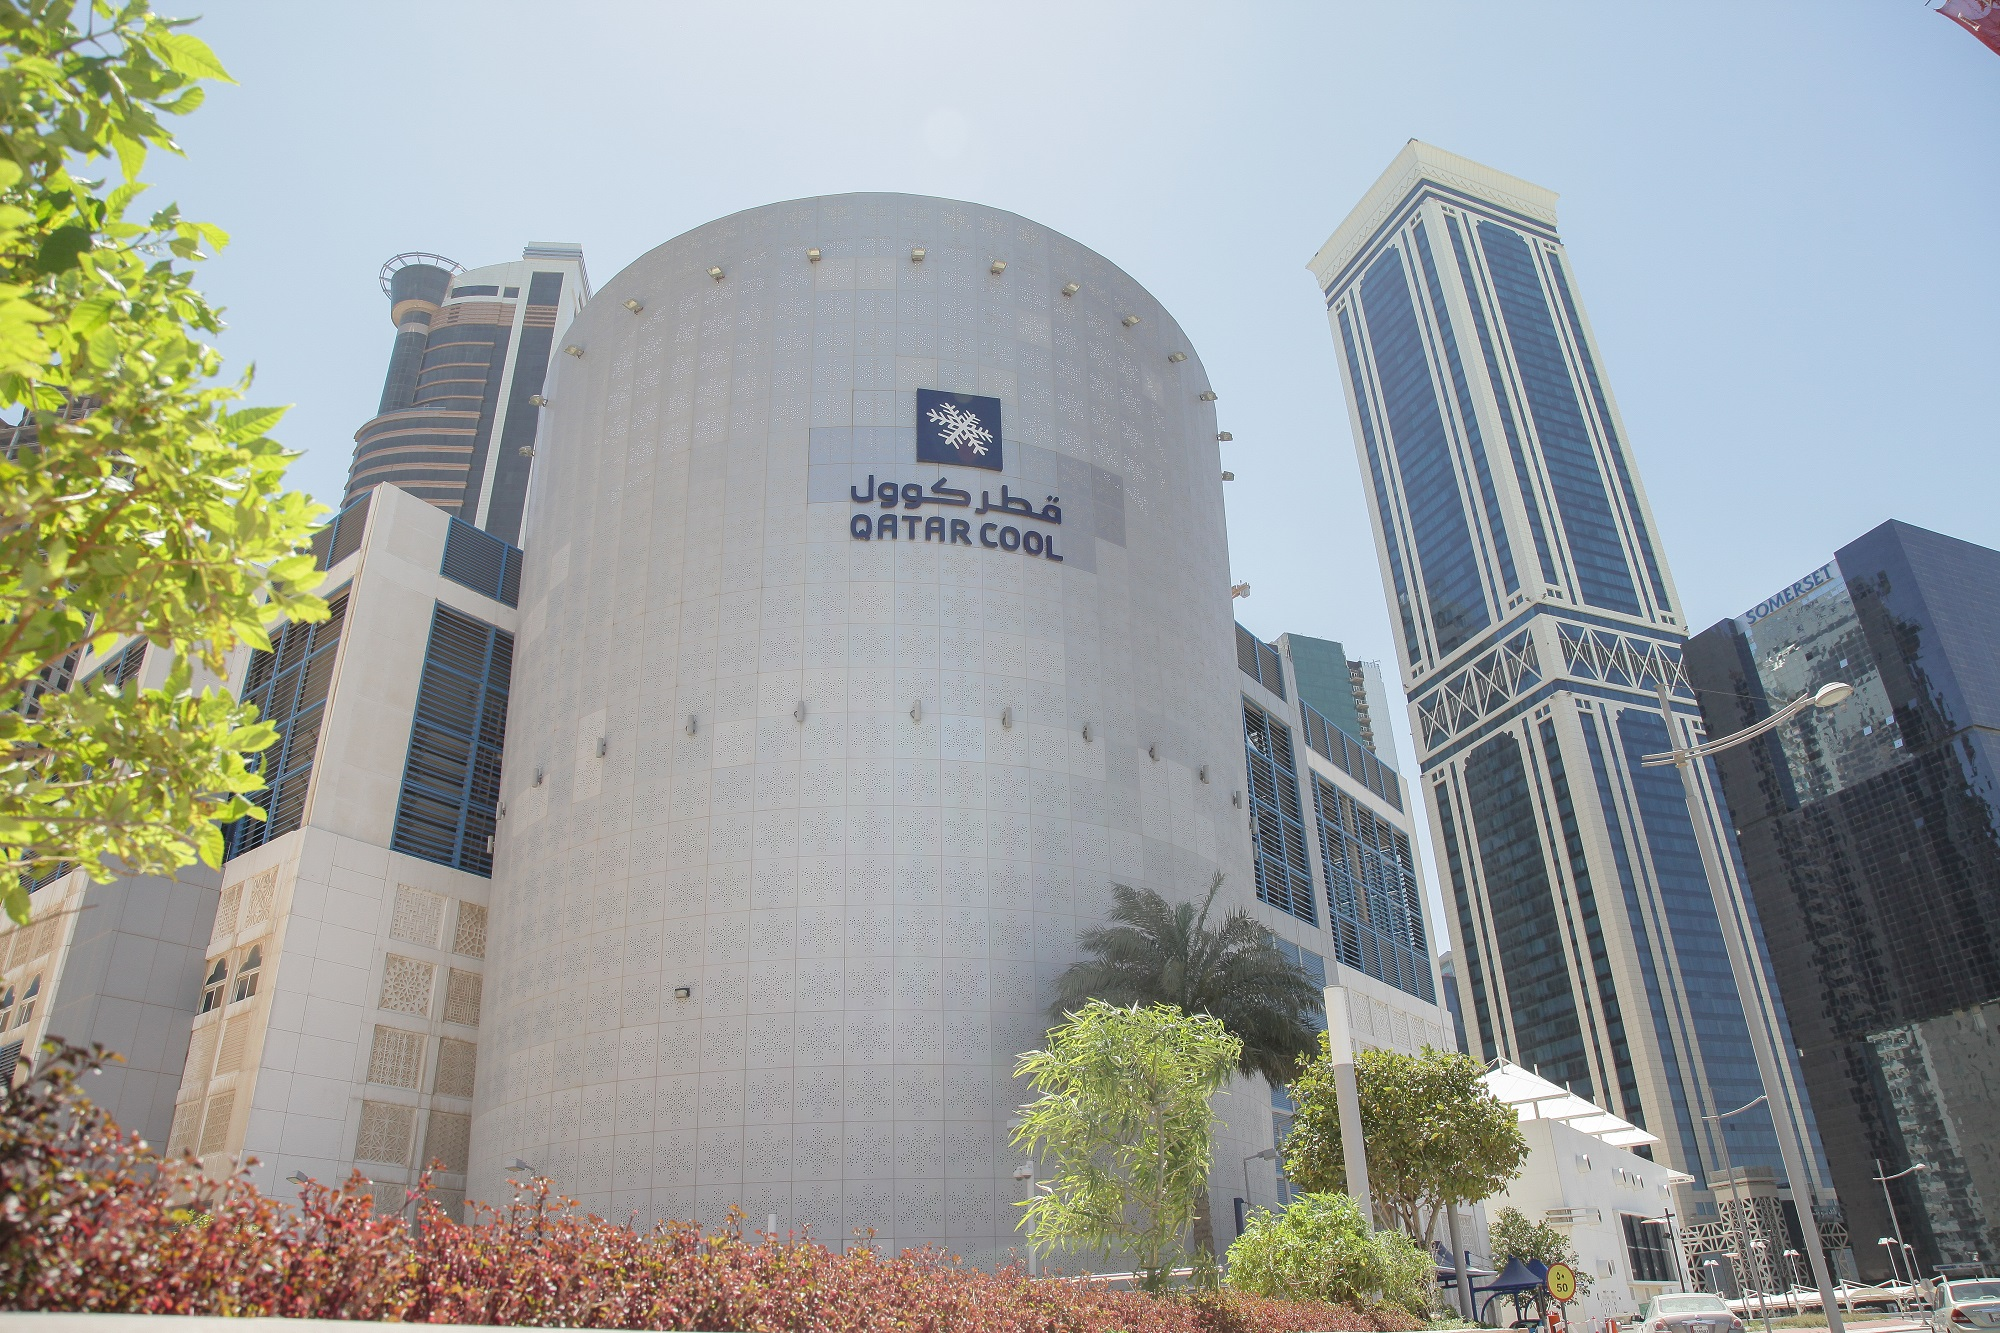 UDC Increase its Capital Share in Qatar Cool